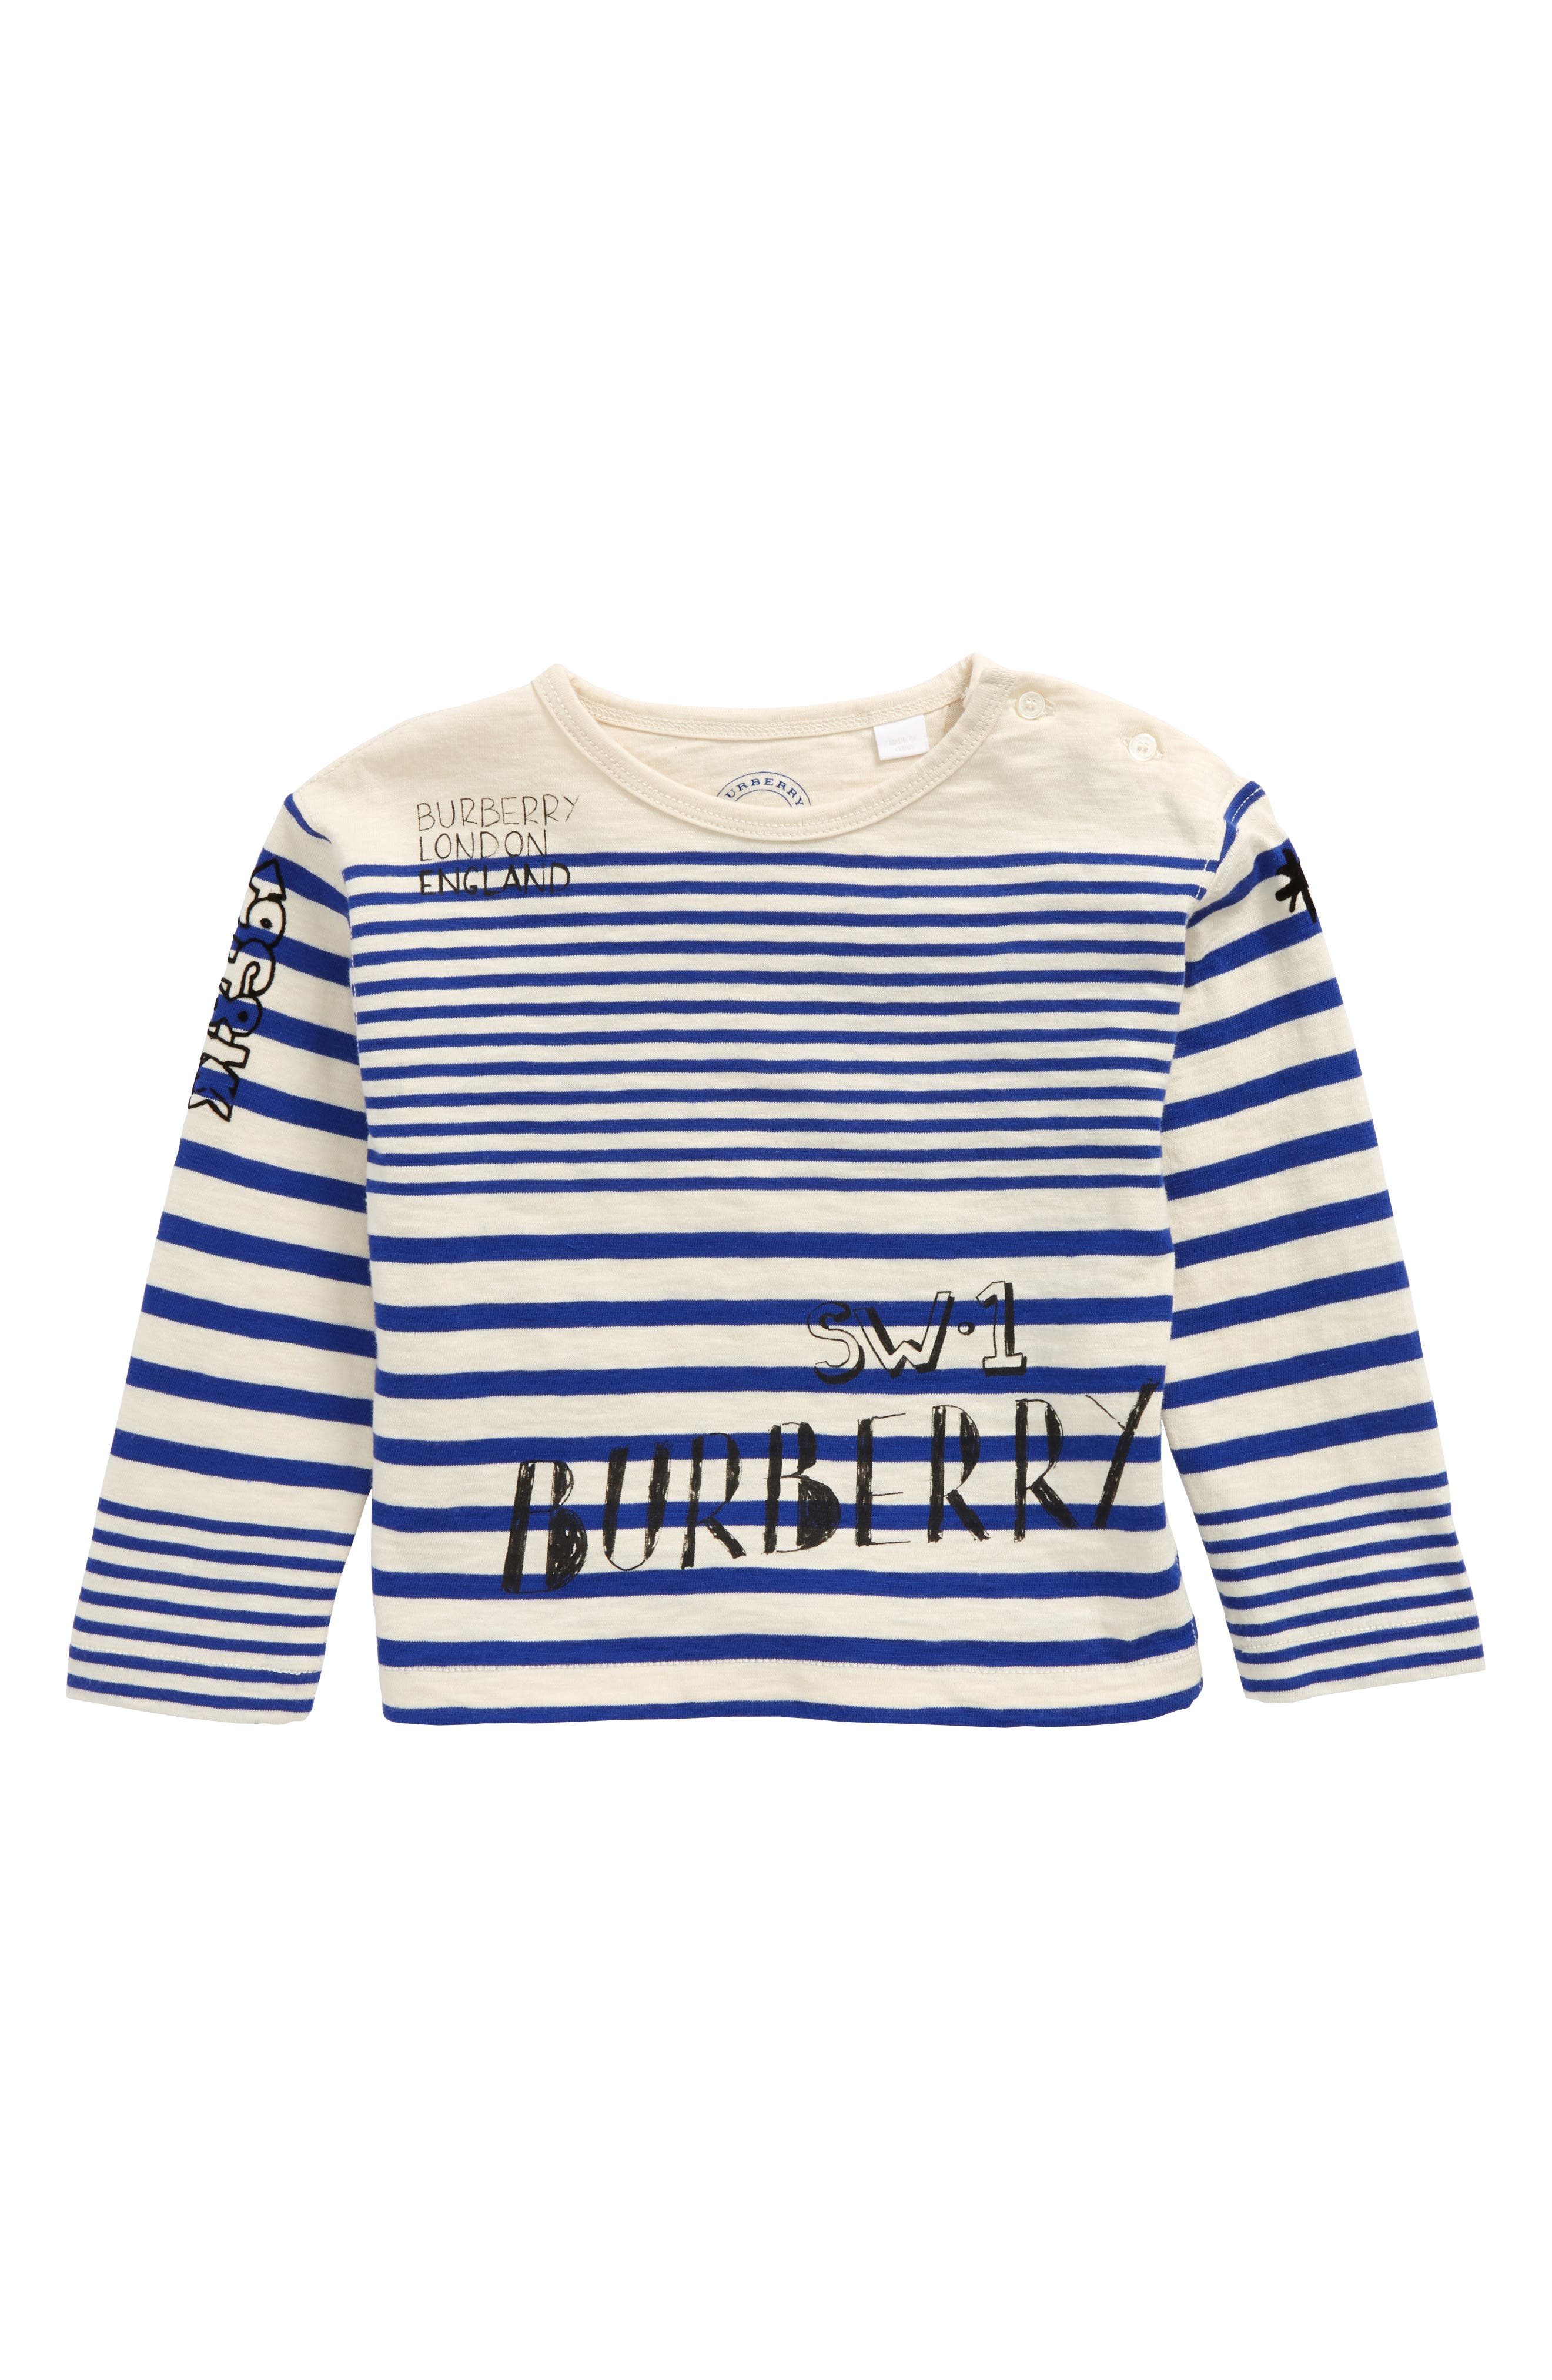 Burberry Stripe T-Shirt (Baby Boys)